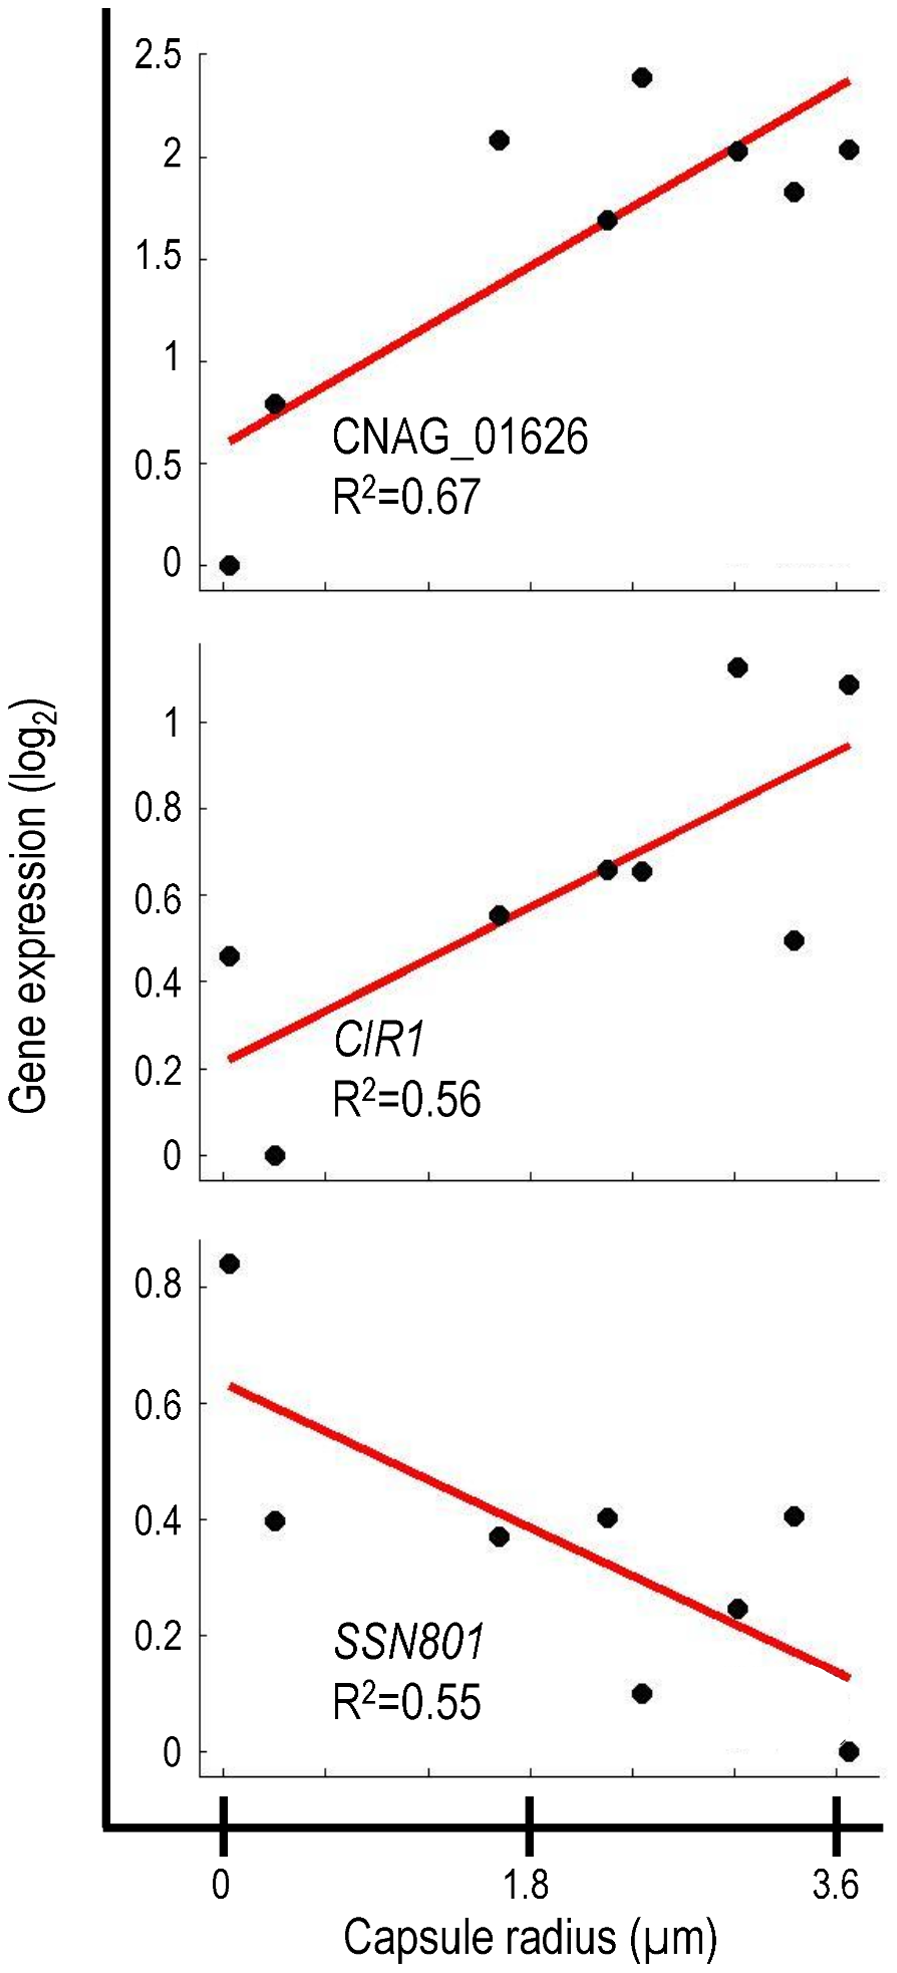 Correlation of gene expression and capsule size for selected genes.